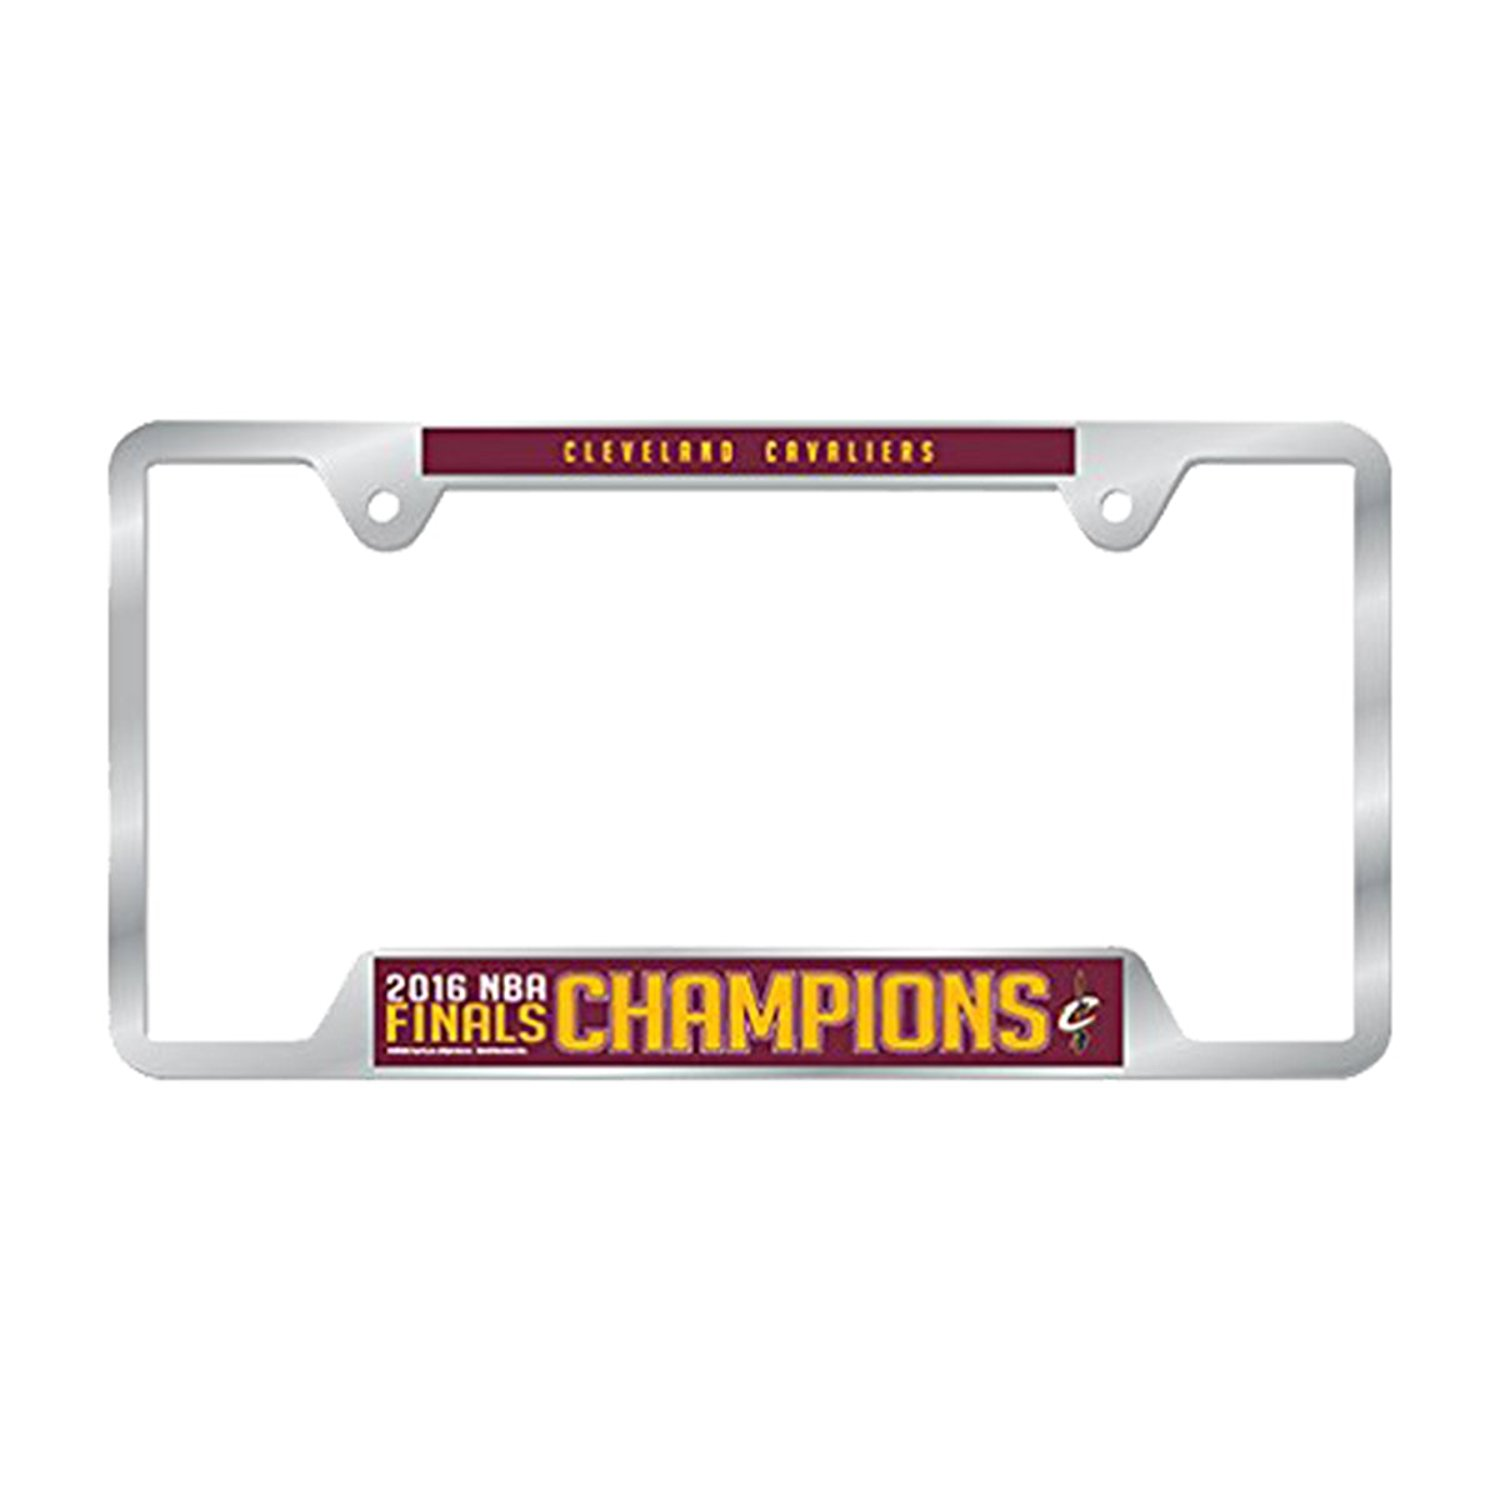 Cleveland Cavaliers 2016 NBA Finals Champions Metal License Plate Frame